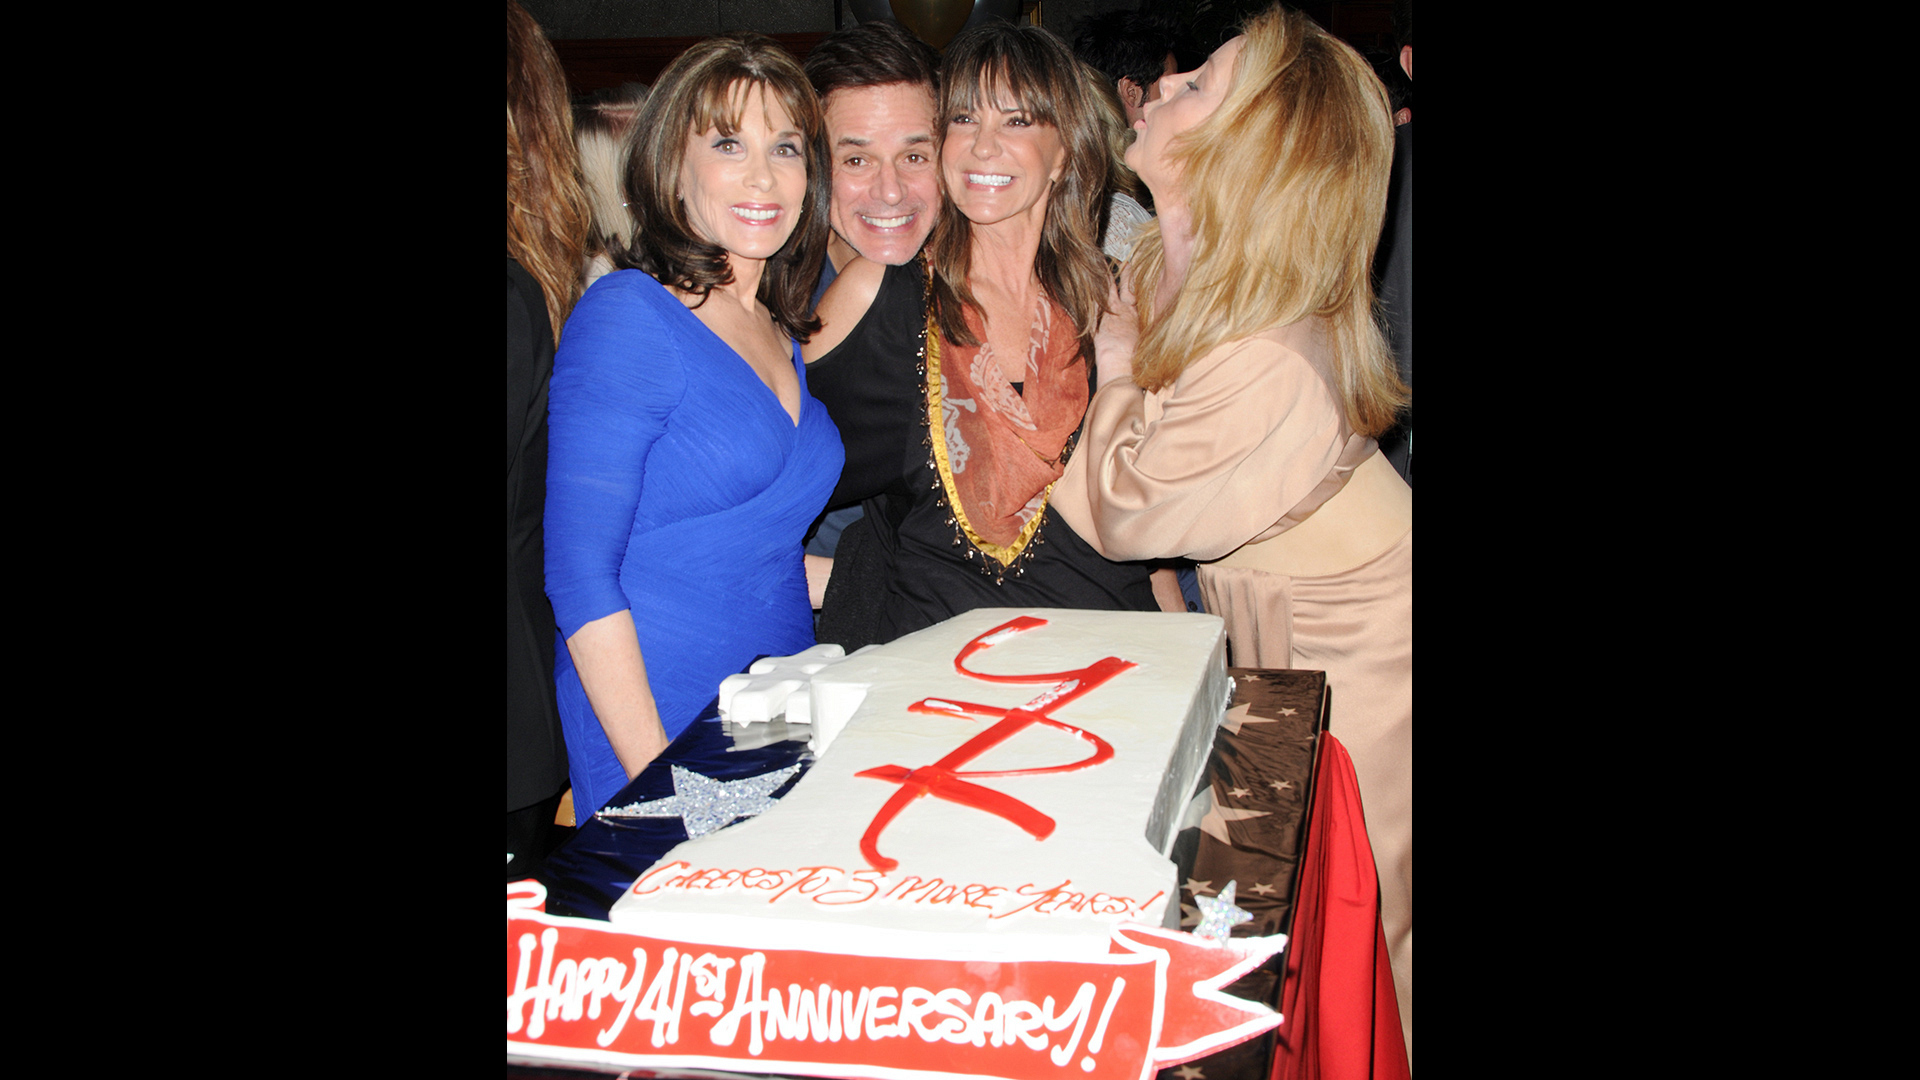 Kate Linder, Christian Le Blanc, Jess Walton, and Melody Thomas Scott party on the 41st Y&R anniversary.